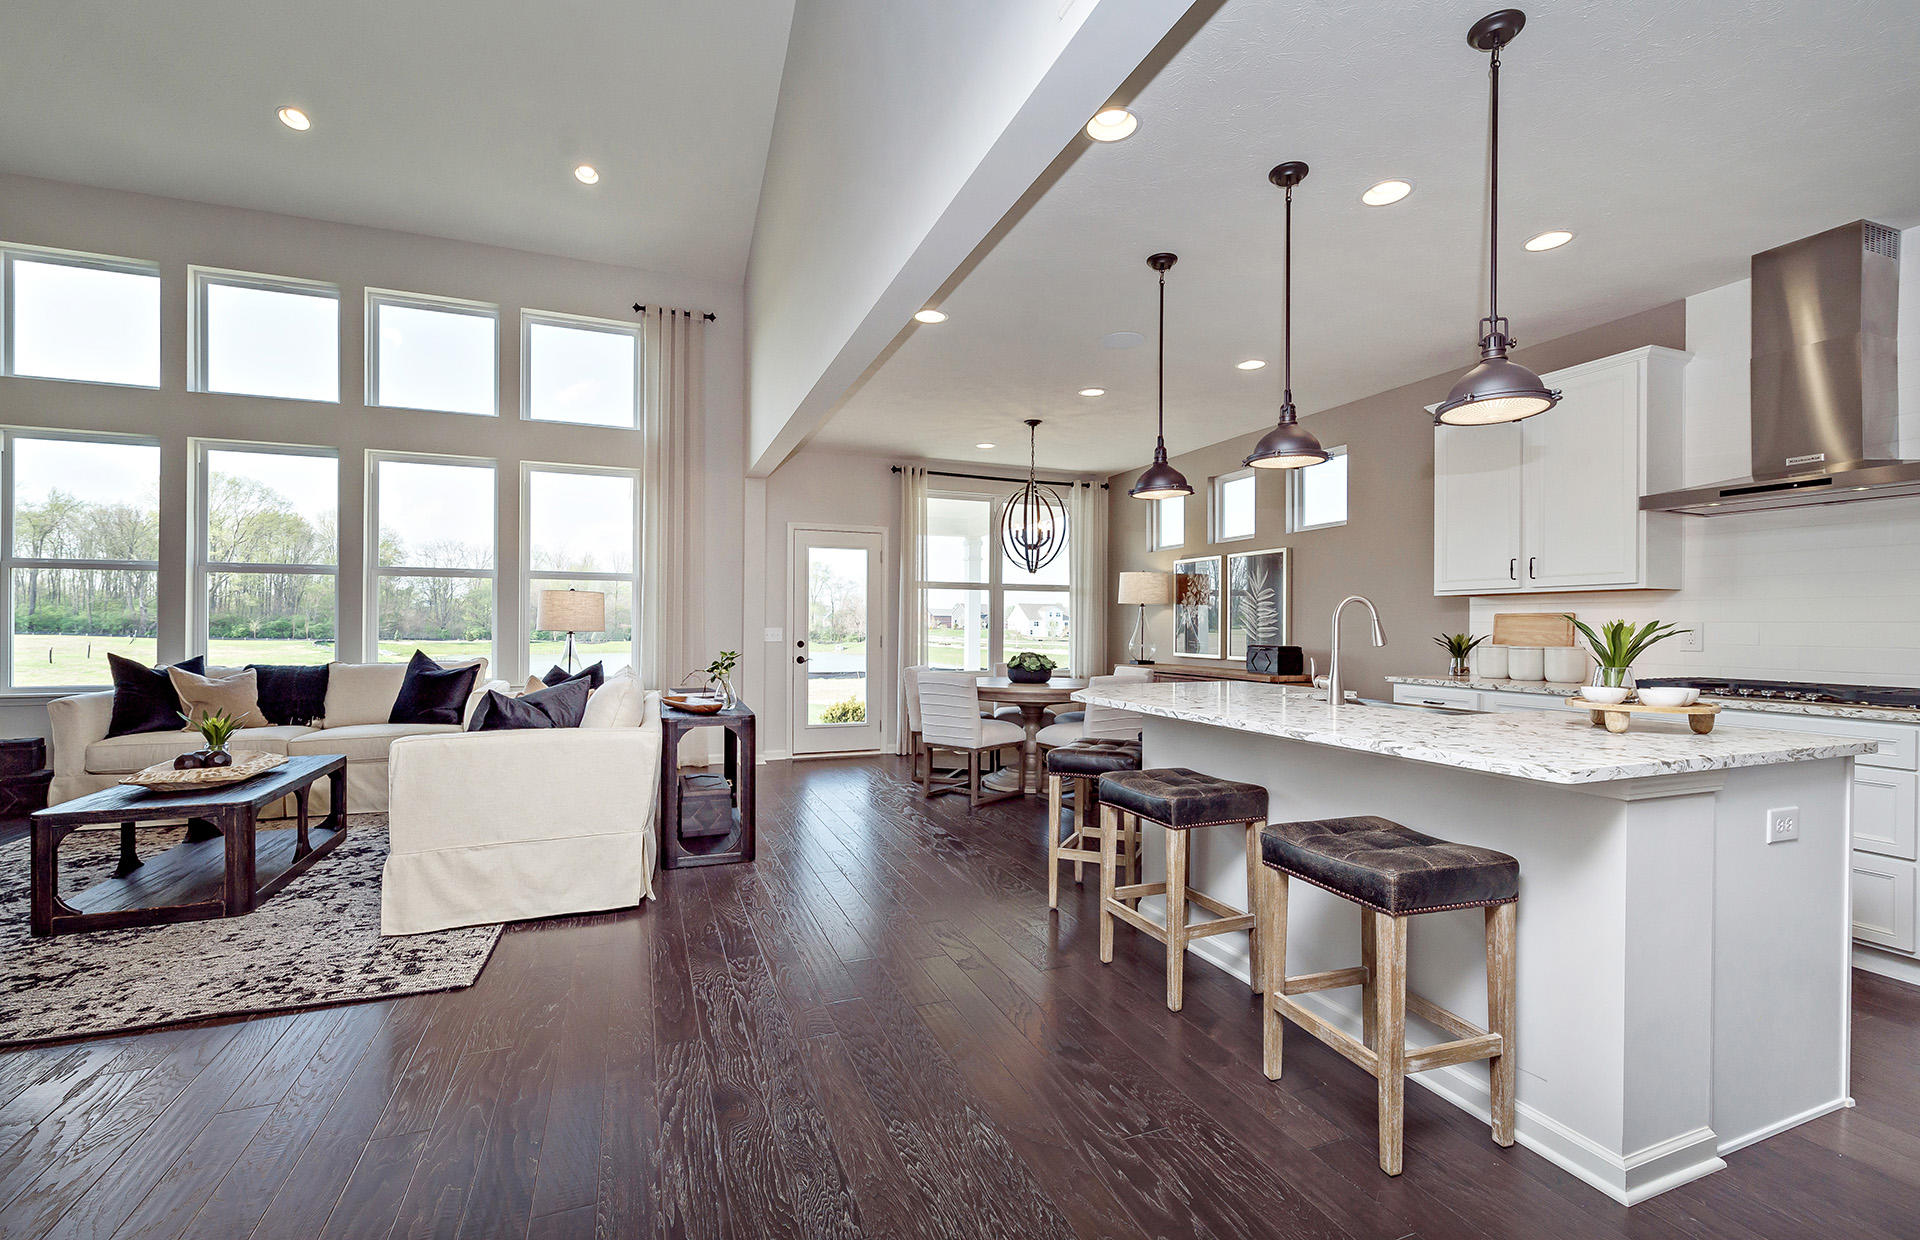 Wood Hollow by Pulte Homes image 2